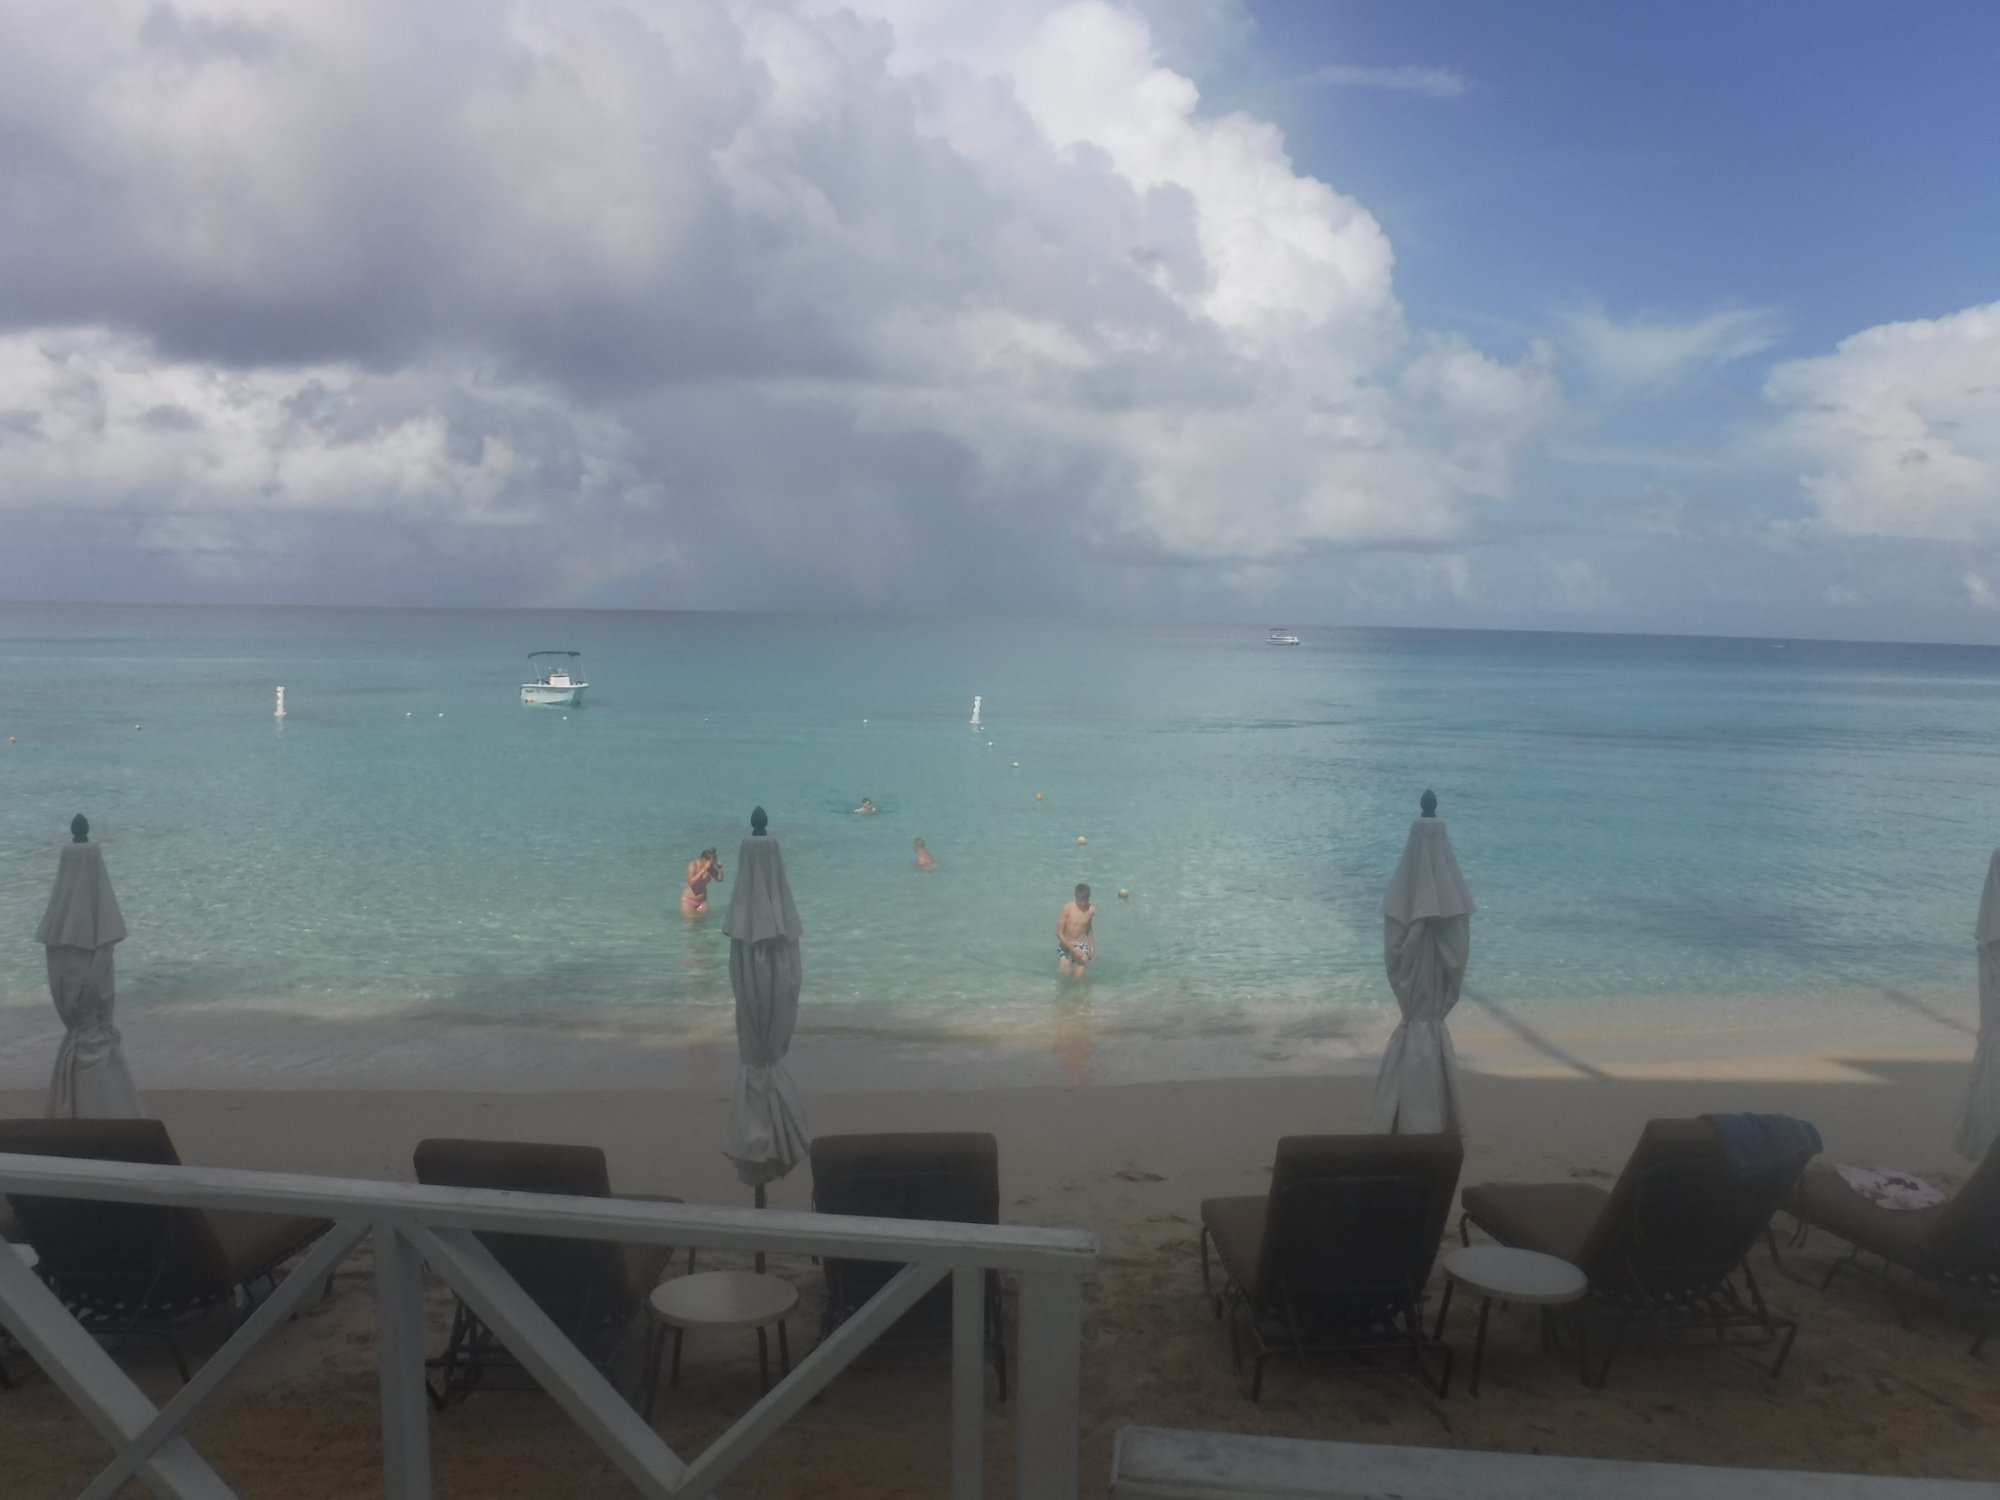 Waves Beachfront in Barbados 2017